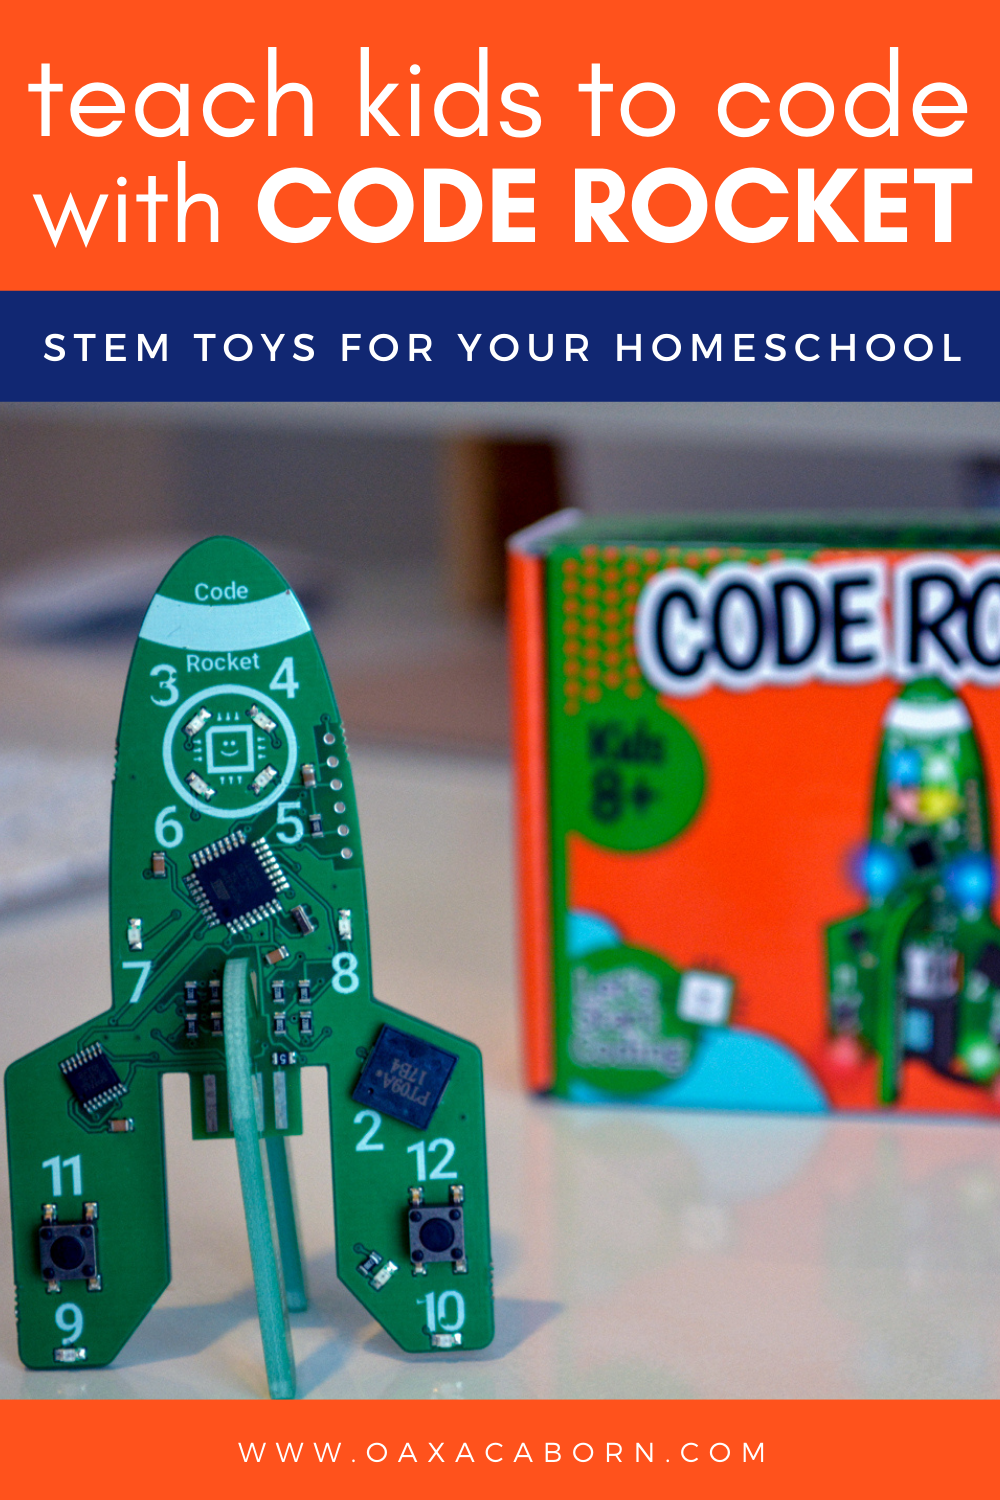 STEM Toys for Your Homeschool: Teach Kids to Code with Code Rocket